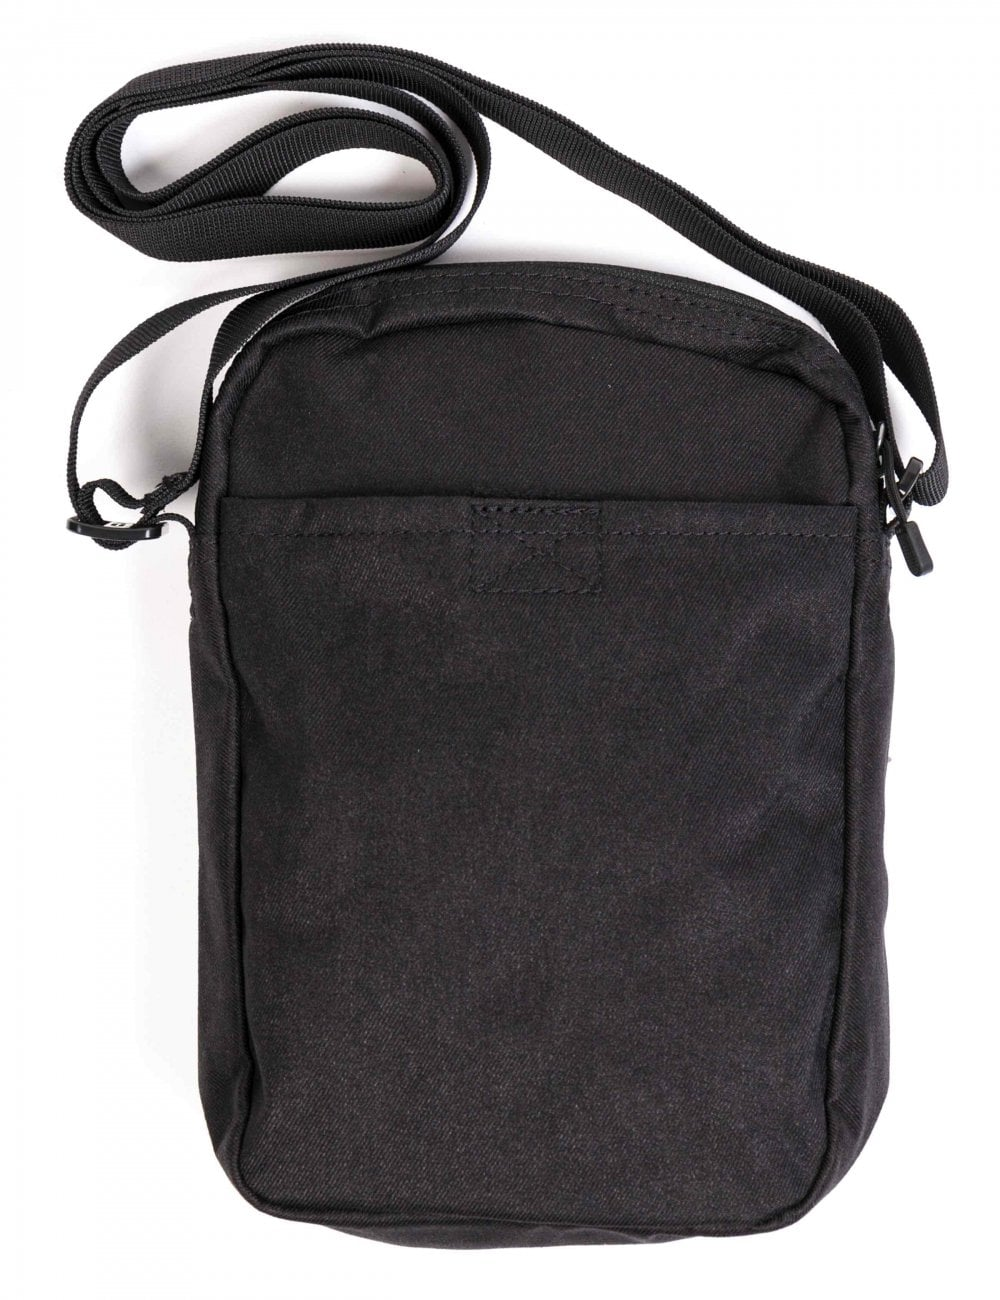 956eb92726a8 Nike Small Item Bag - Black - Accessories from Fat Buddha Store UK